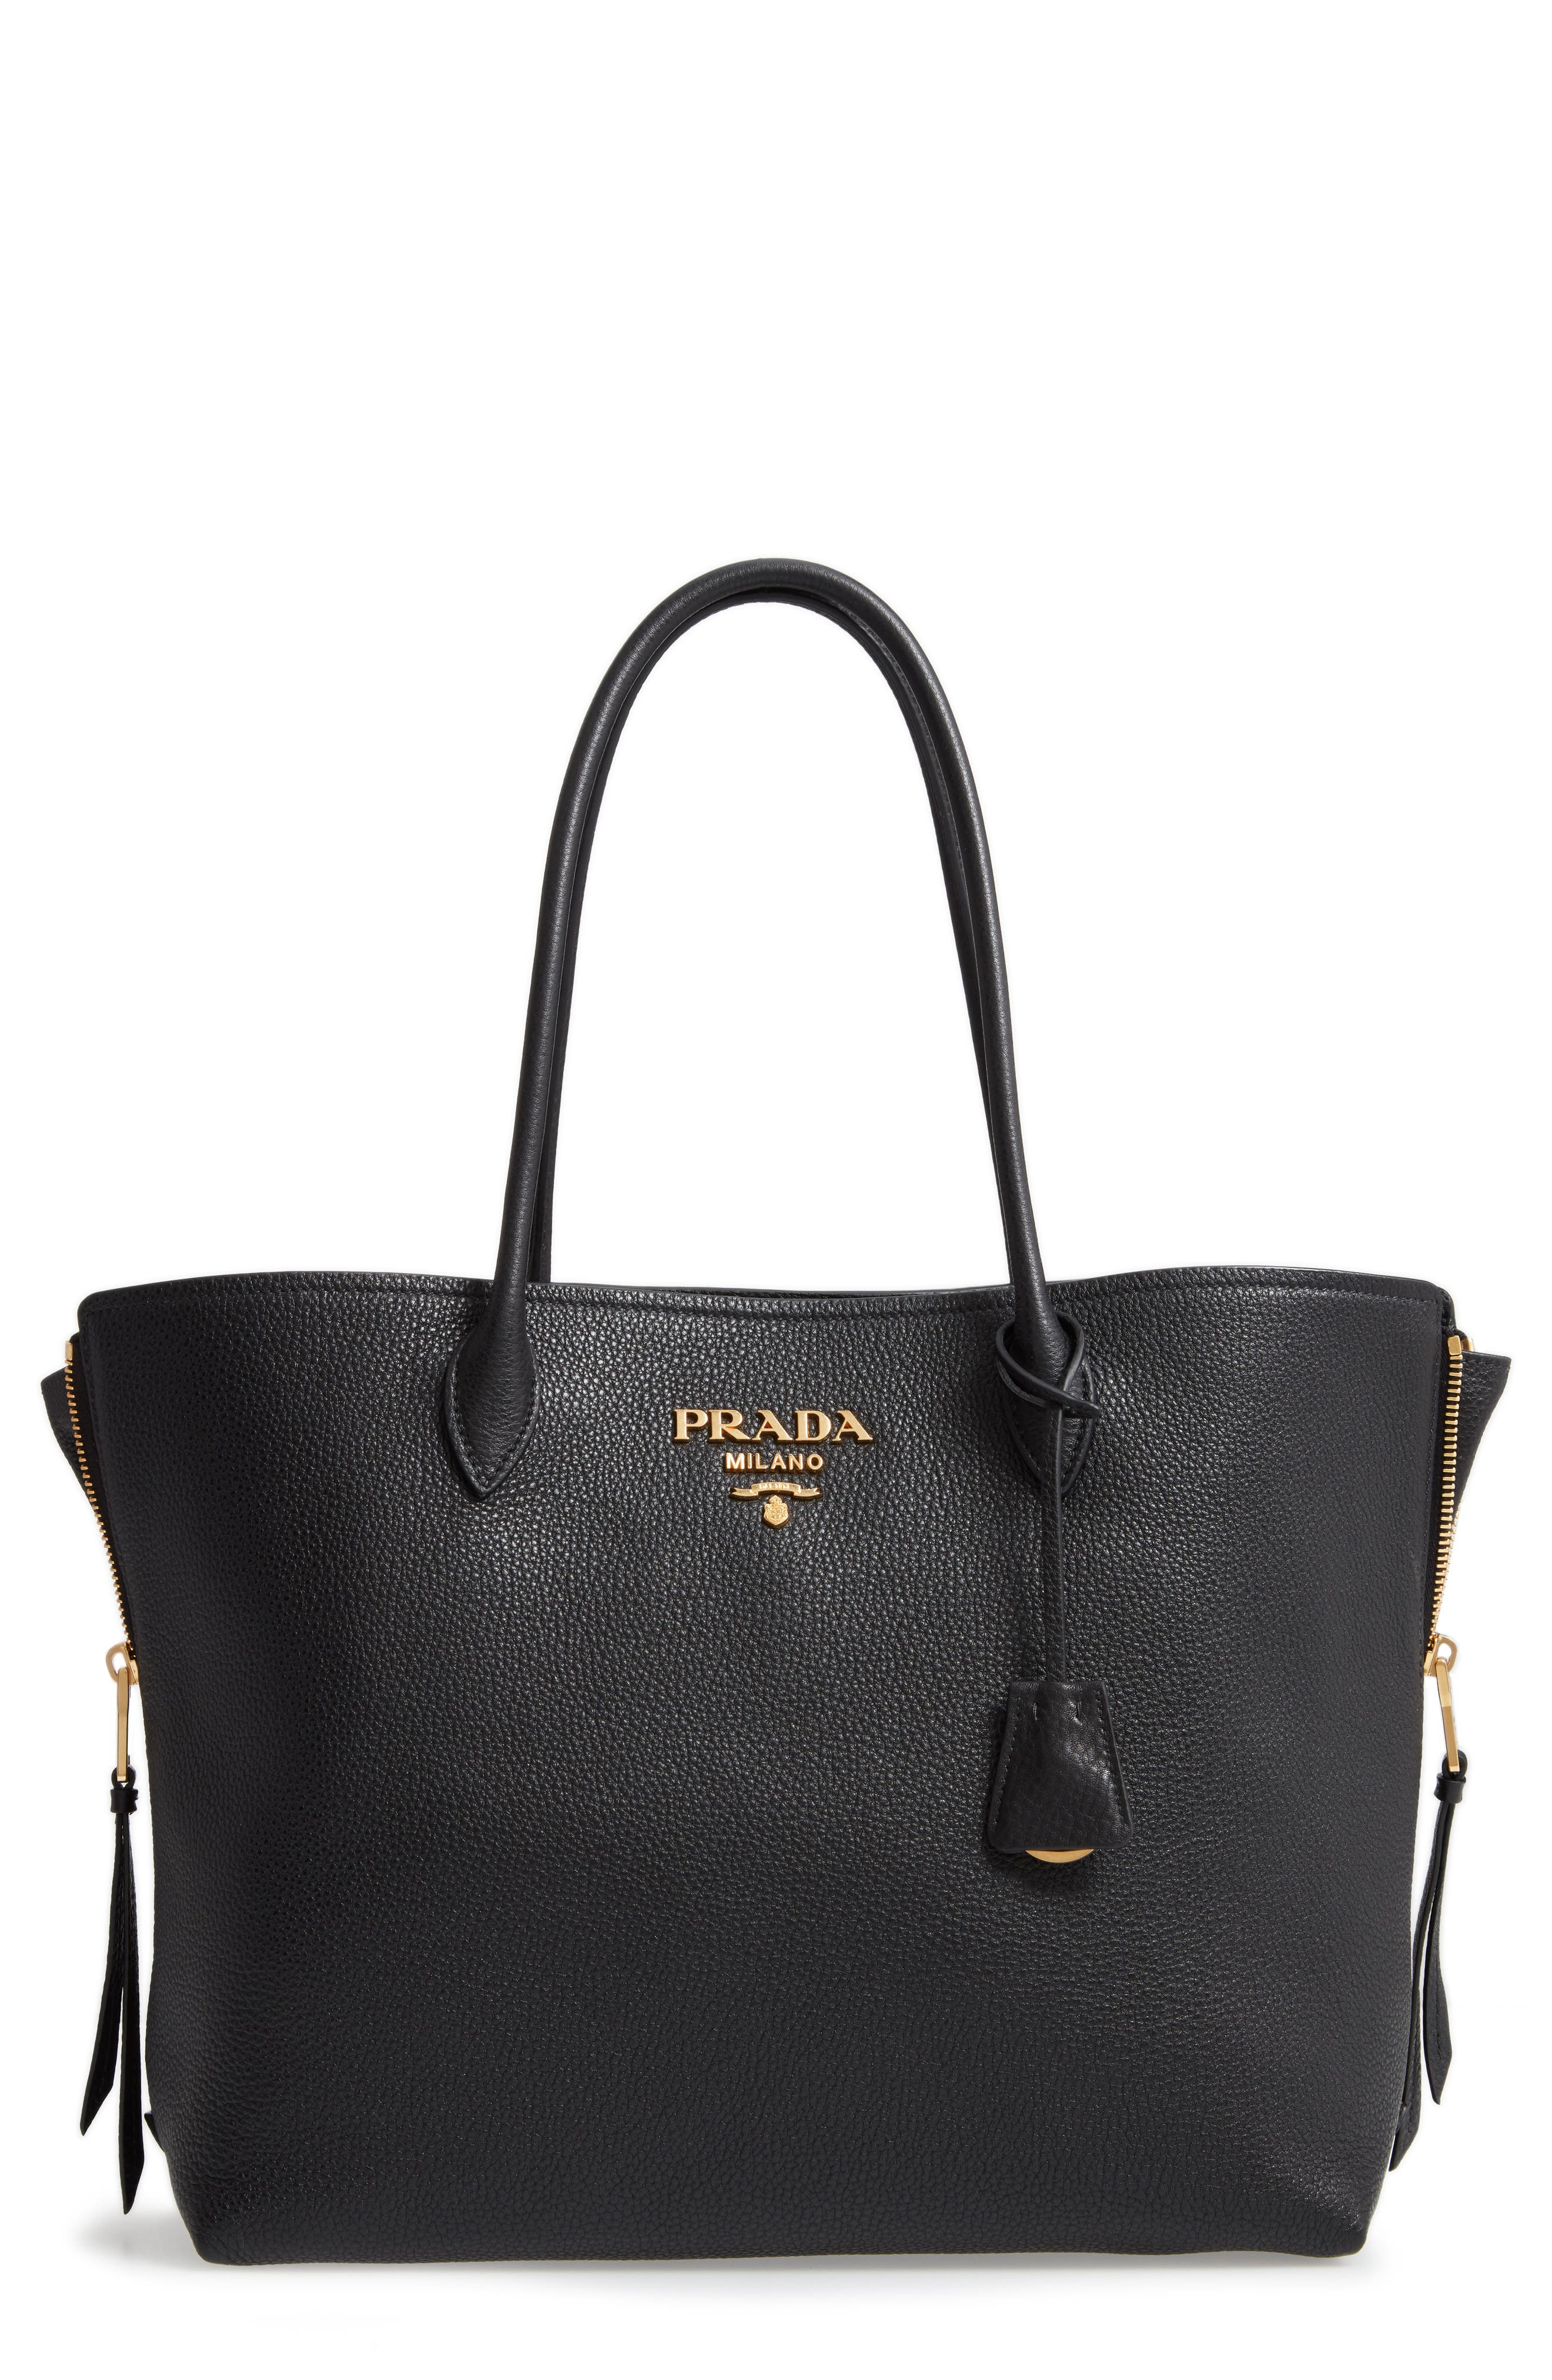 6b8146484eb7 switzerland prada inside bag croco comb 19eaa 1005b  cheap prada small  double compartment zip saffiano leather crossbody bag. 850.00. product  image 70ecb